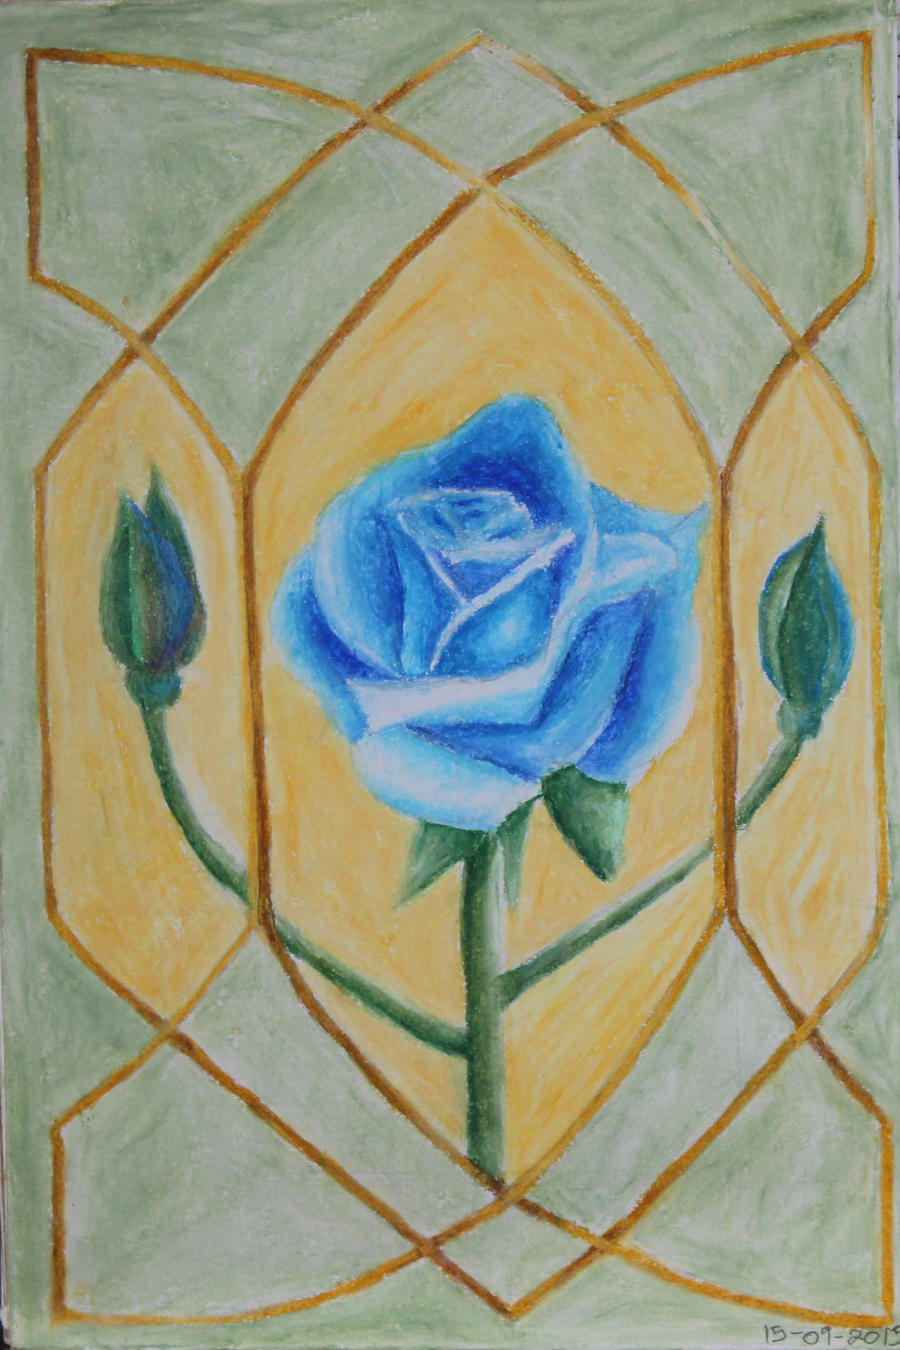 The blue rose of hope by African-Amber